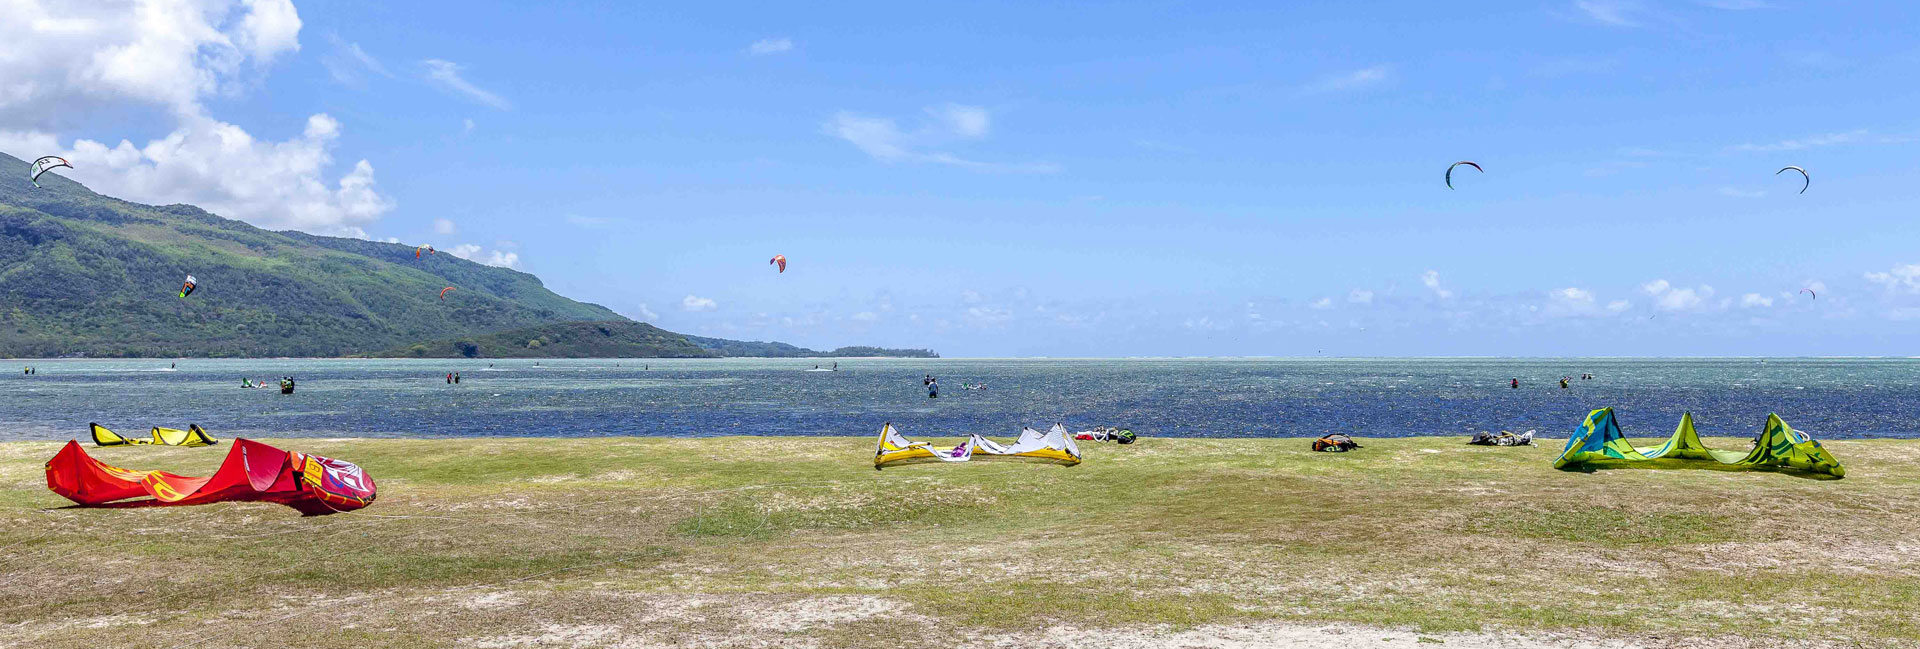 kite-lagoon-le-morne